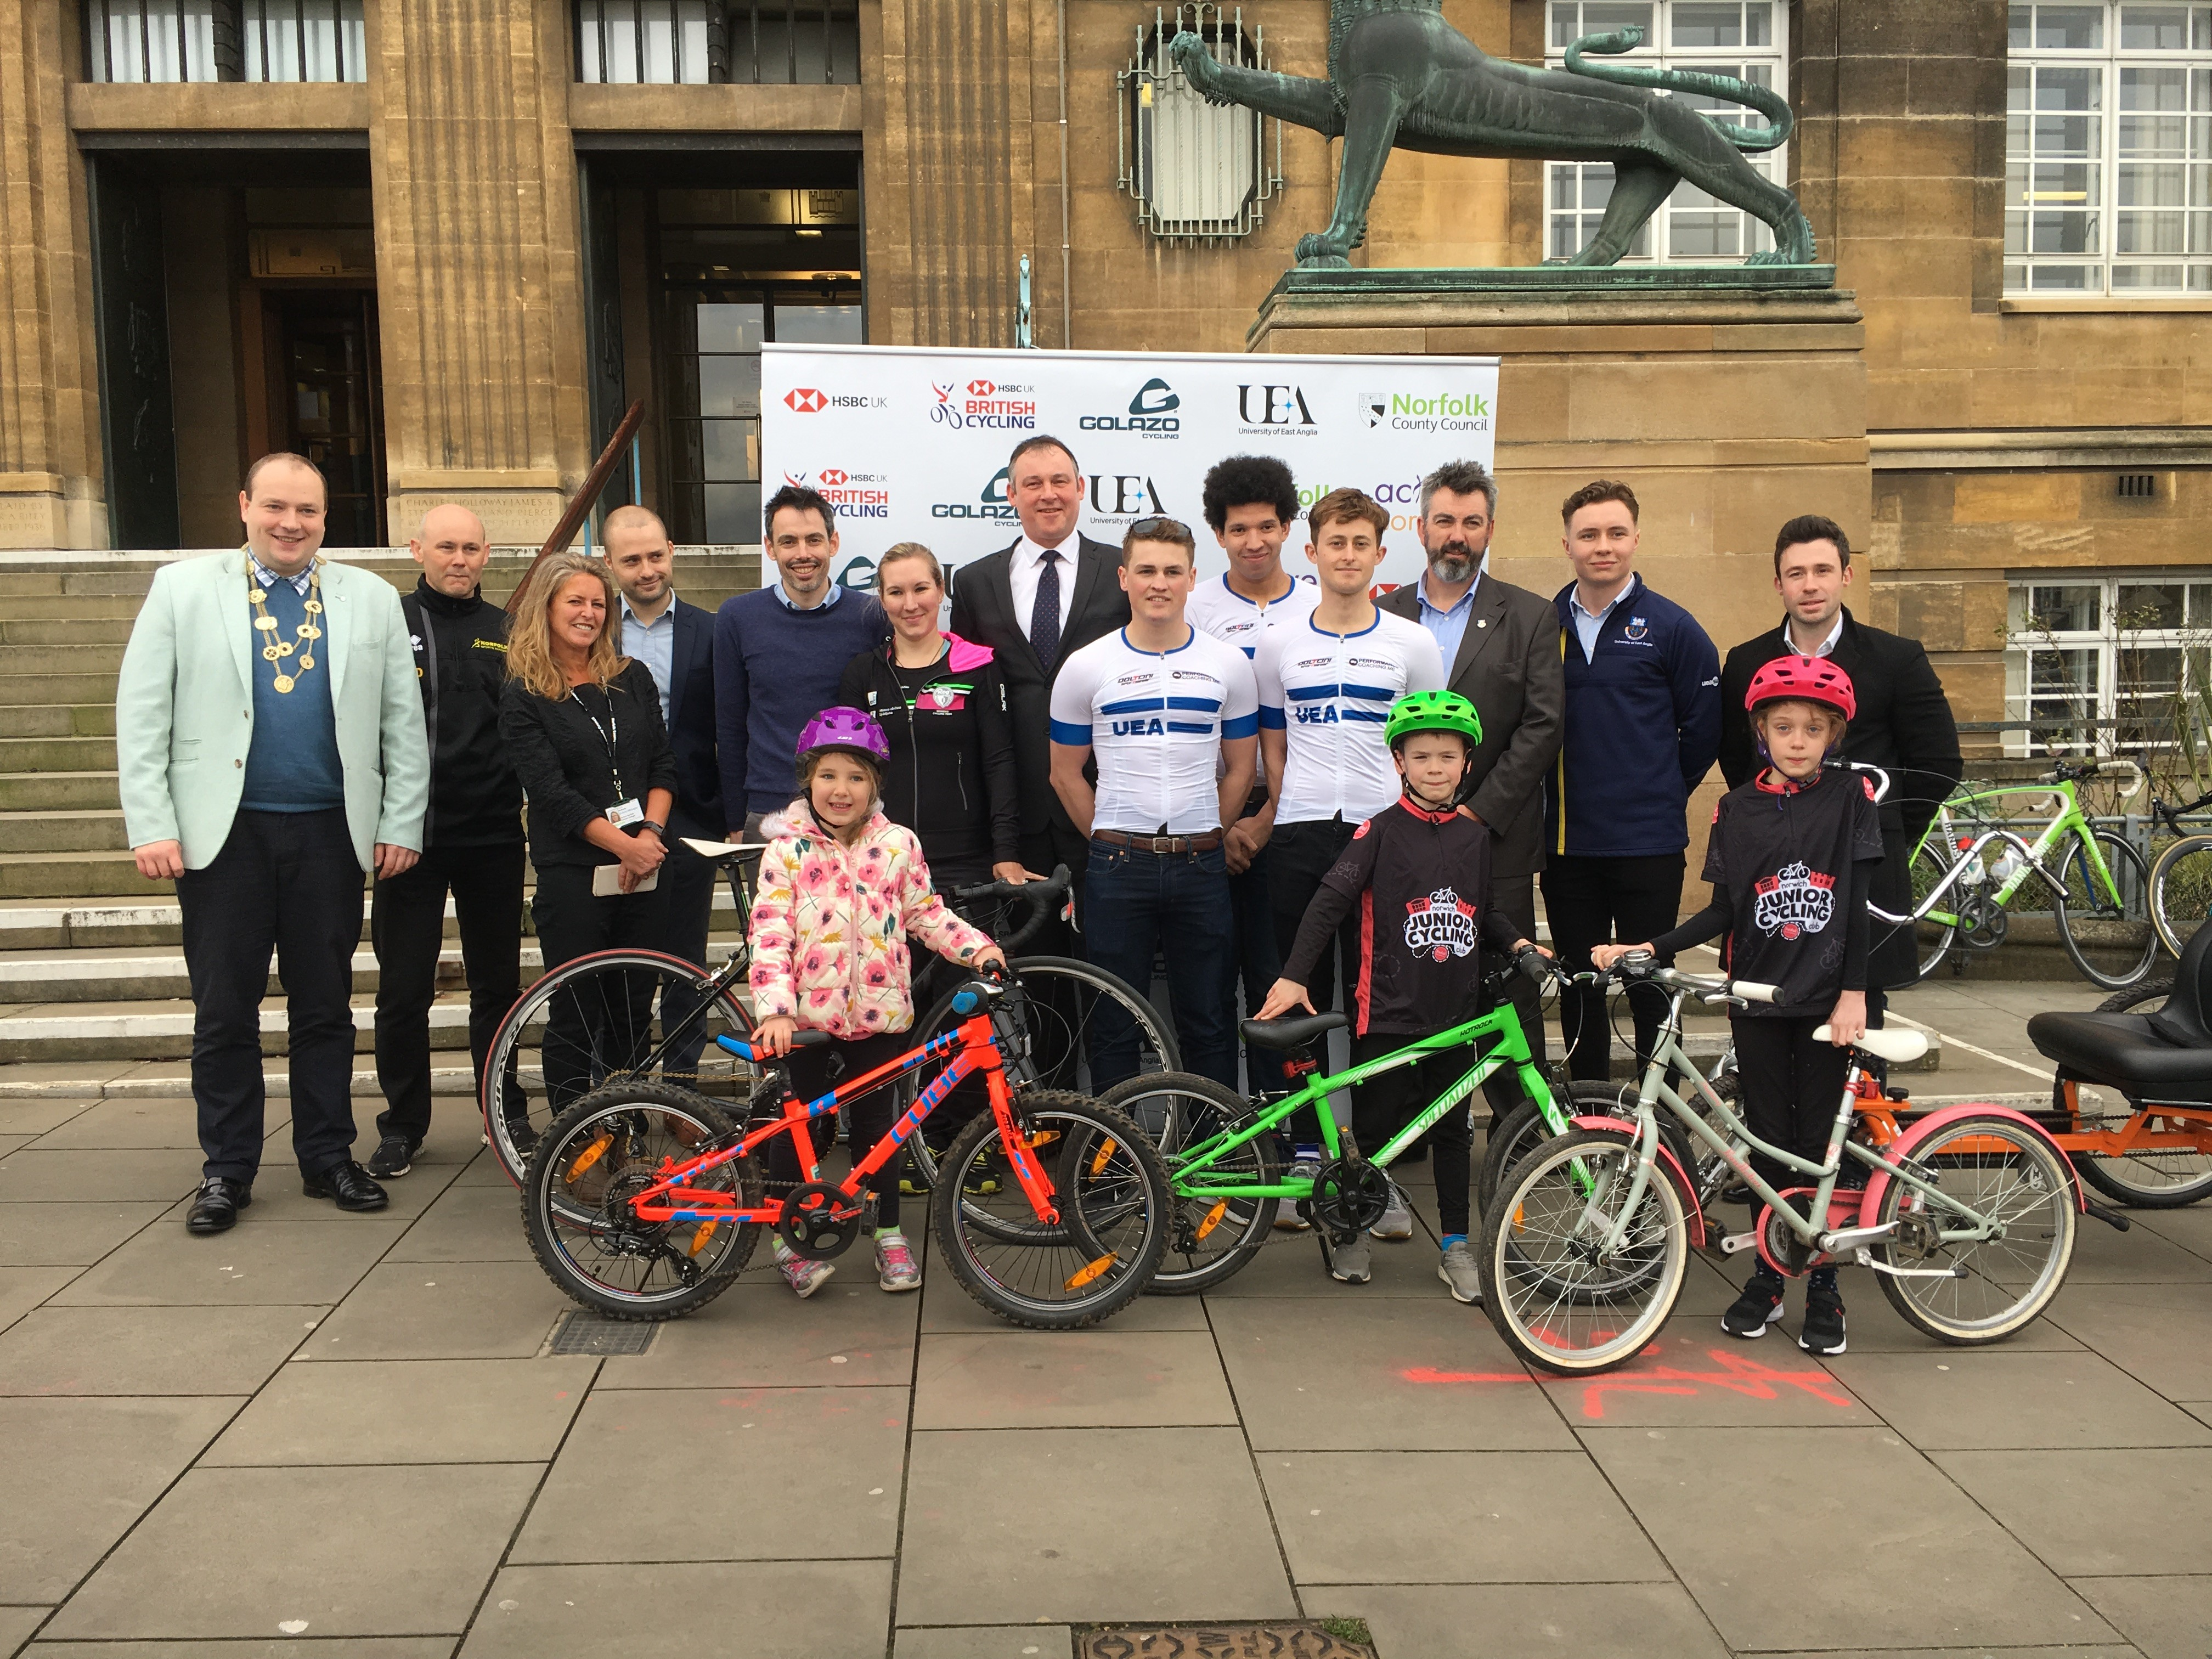 HSBC UK | NATIONAL ROAD CHAMPIONSHIPS 2019 launch photo